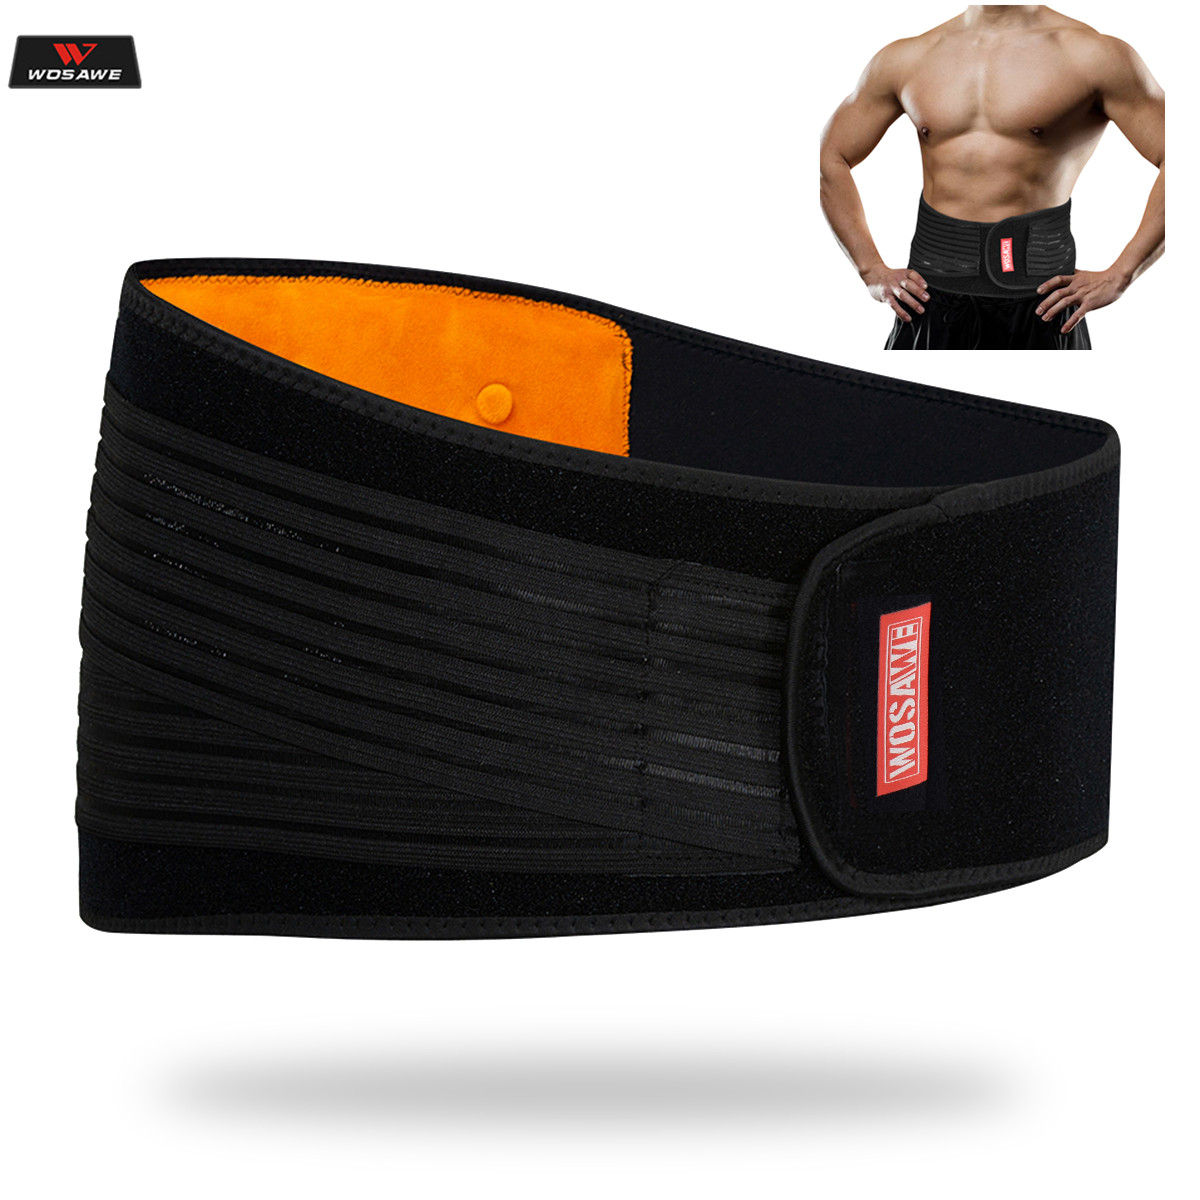 WOSAWE Motorcycle Back Support Lumbar brace Belt Protection Moto Motocross Protective Breathable Elastic Adjust Waist Protector Protective Gears Accessories     - title=